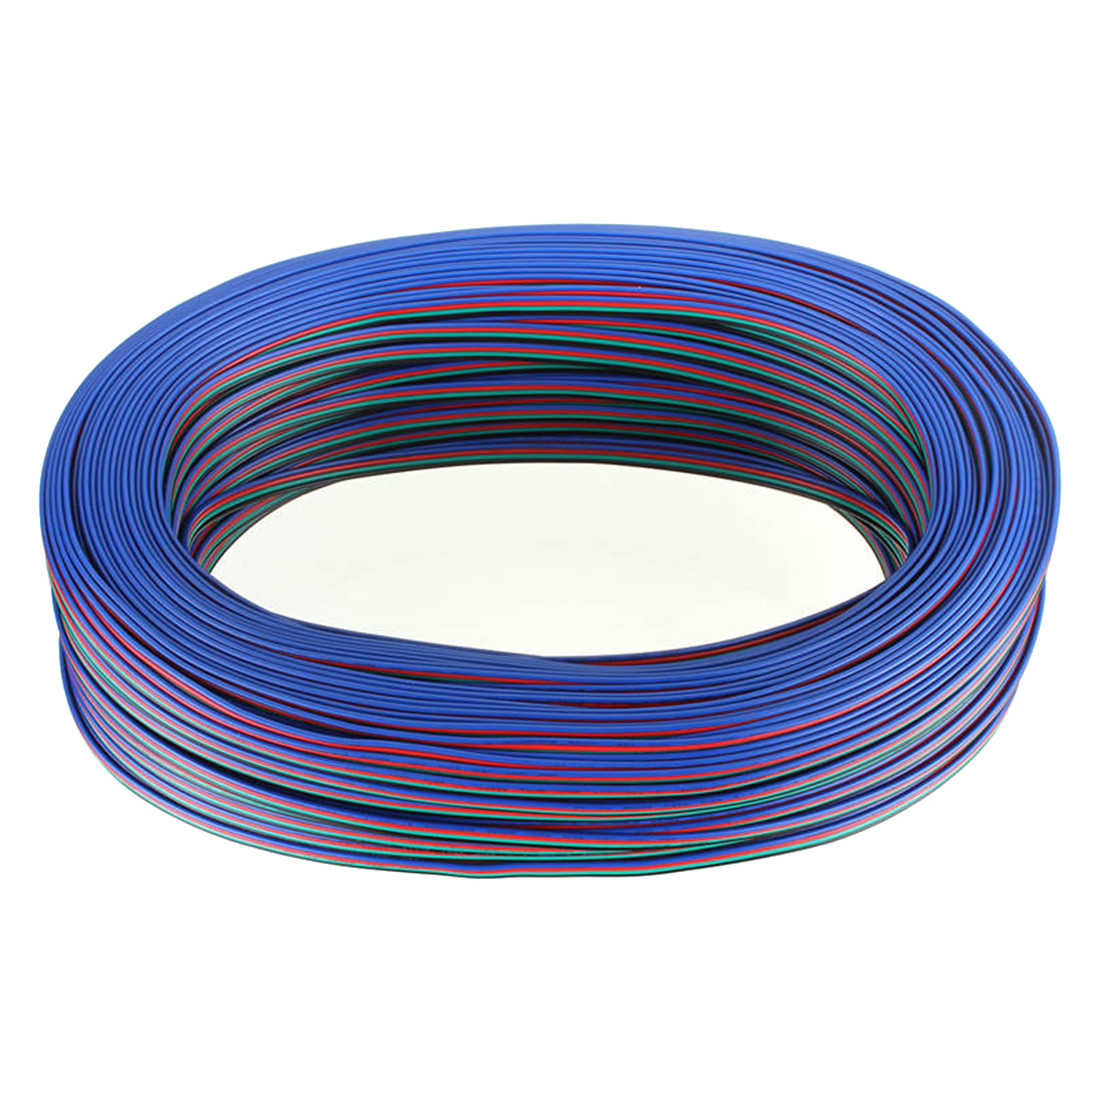 Detail Feedback Questions About 100m Fast Shipping 4 Pin 22awg Rgb 3528 5050 Led Light Strips Cable Wire Ws2801 Lpd8806 Strip Extension Cord